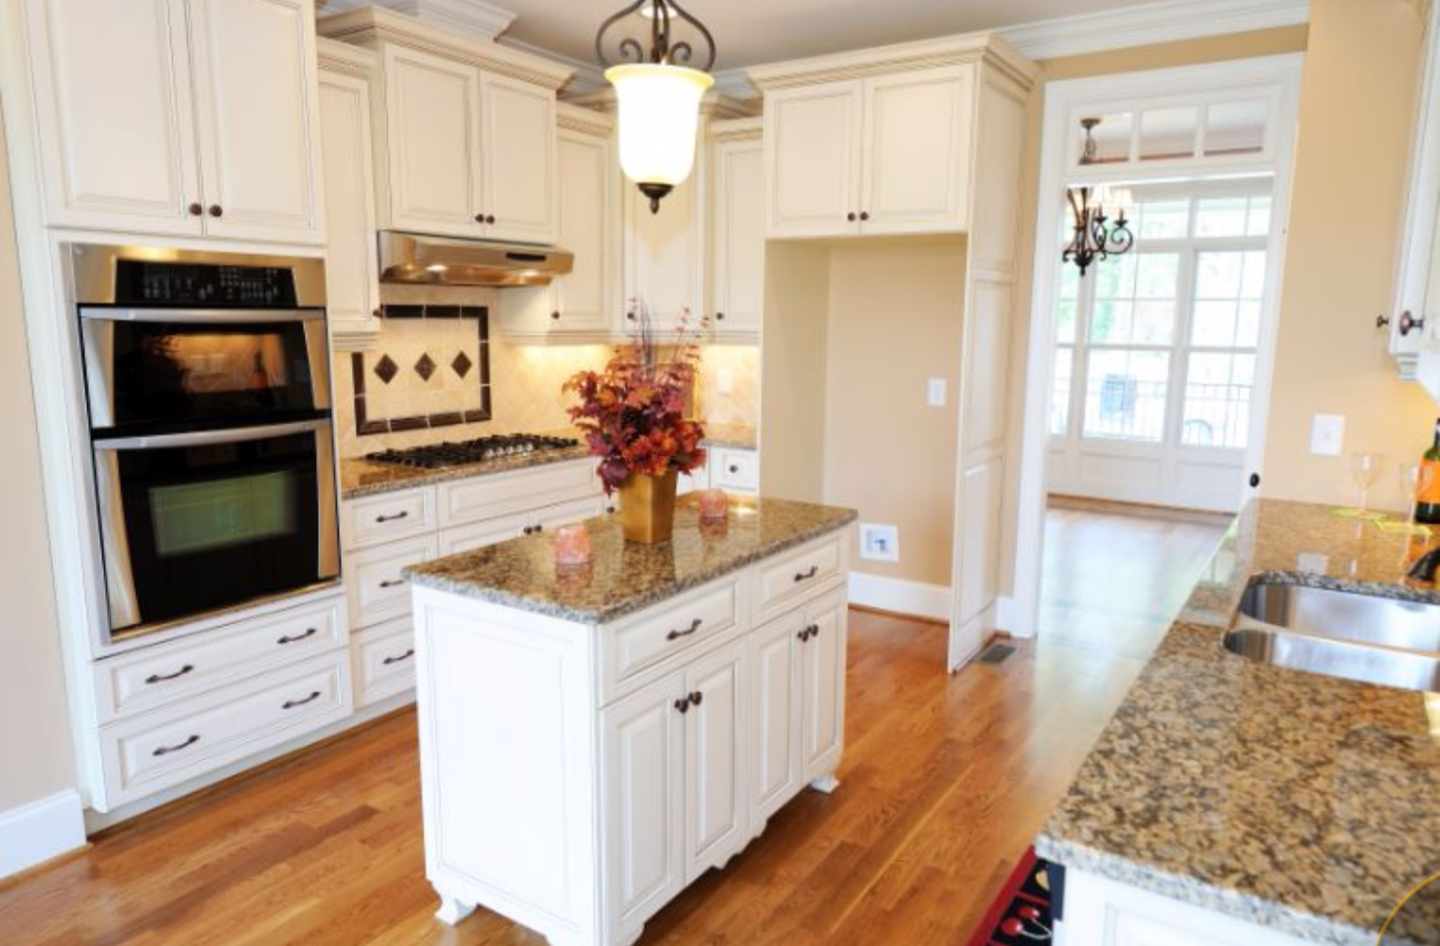 Painting kitchen cabinets and cabinet refinishing denver for Painting kitchen cabinets